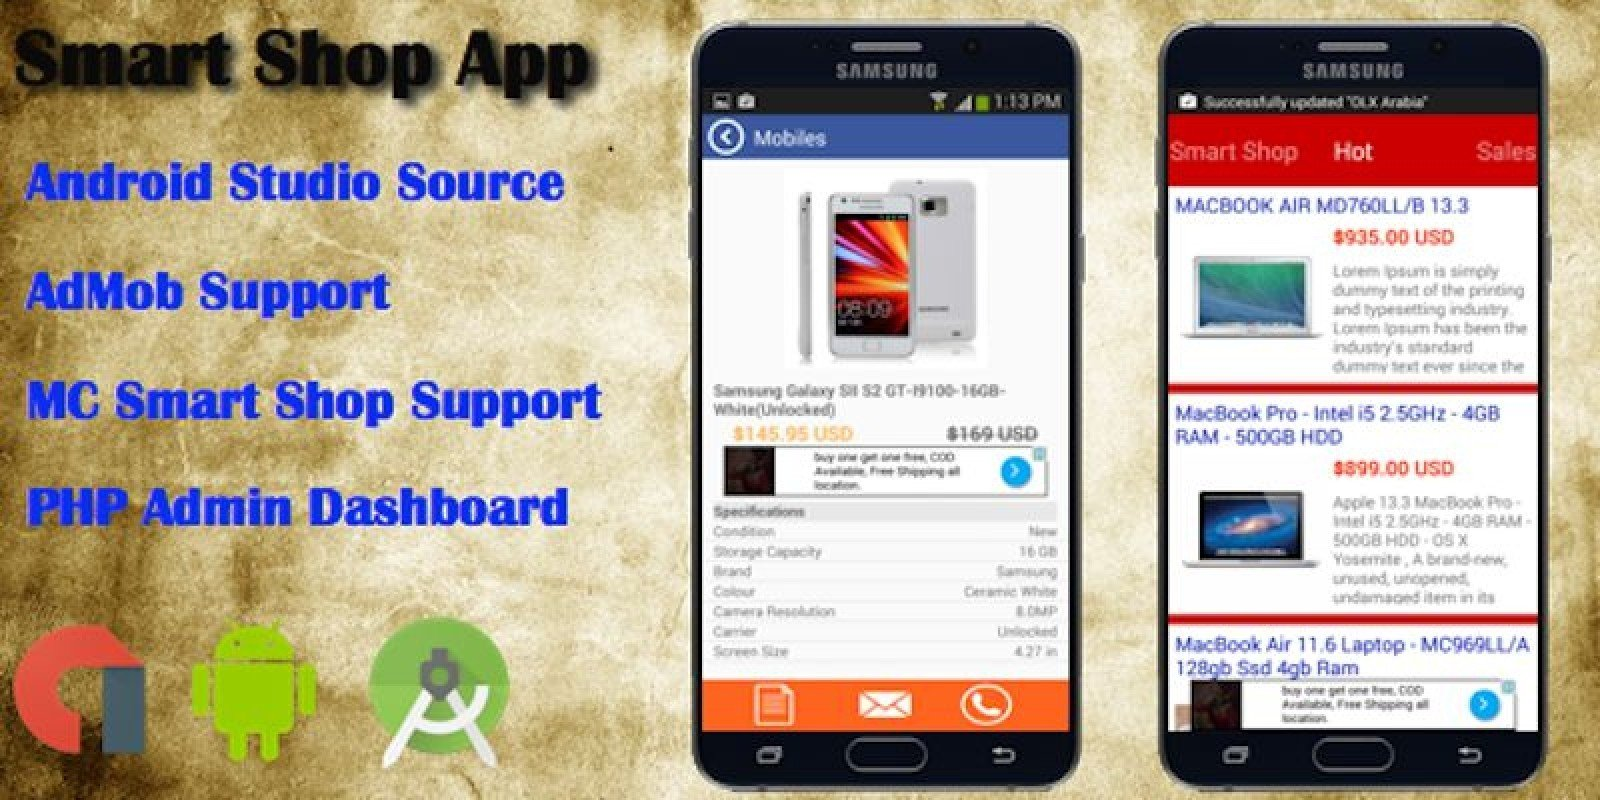 MC Smart Shop - Android App Source Code